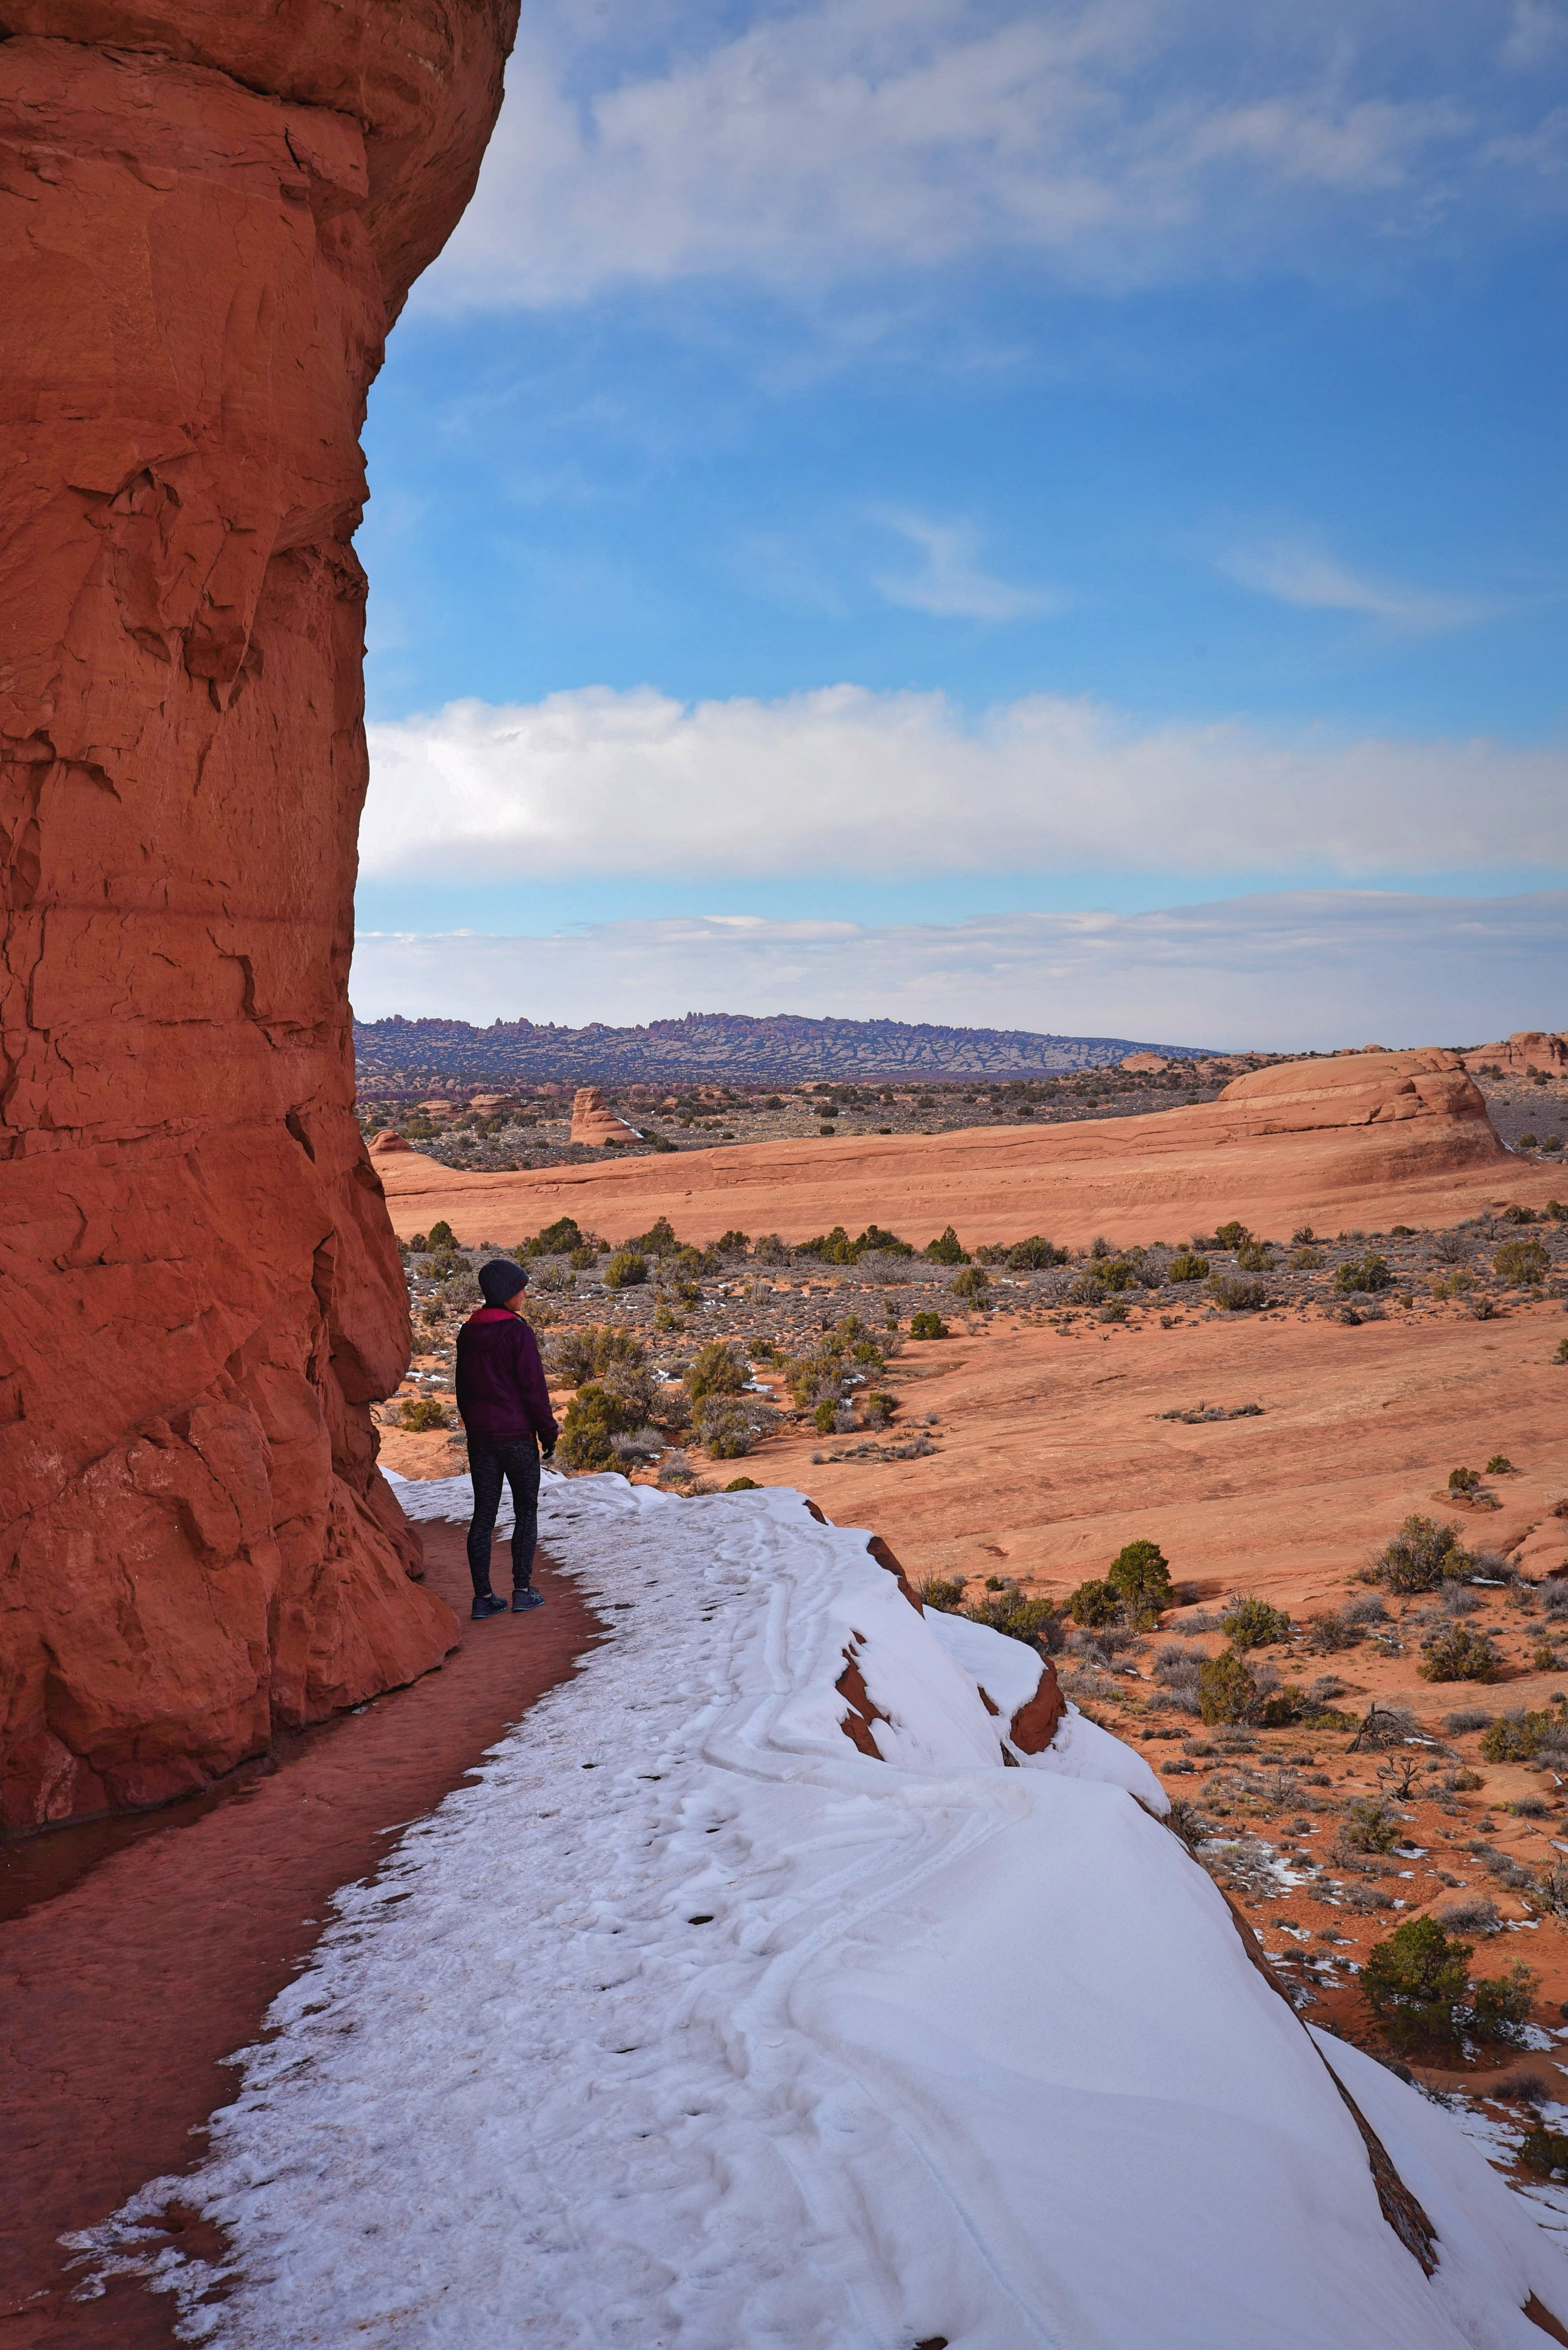 This ledge is the final portion of the Delicate Arch trail.